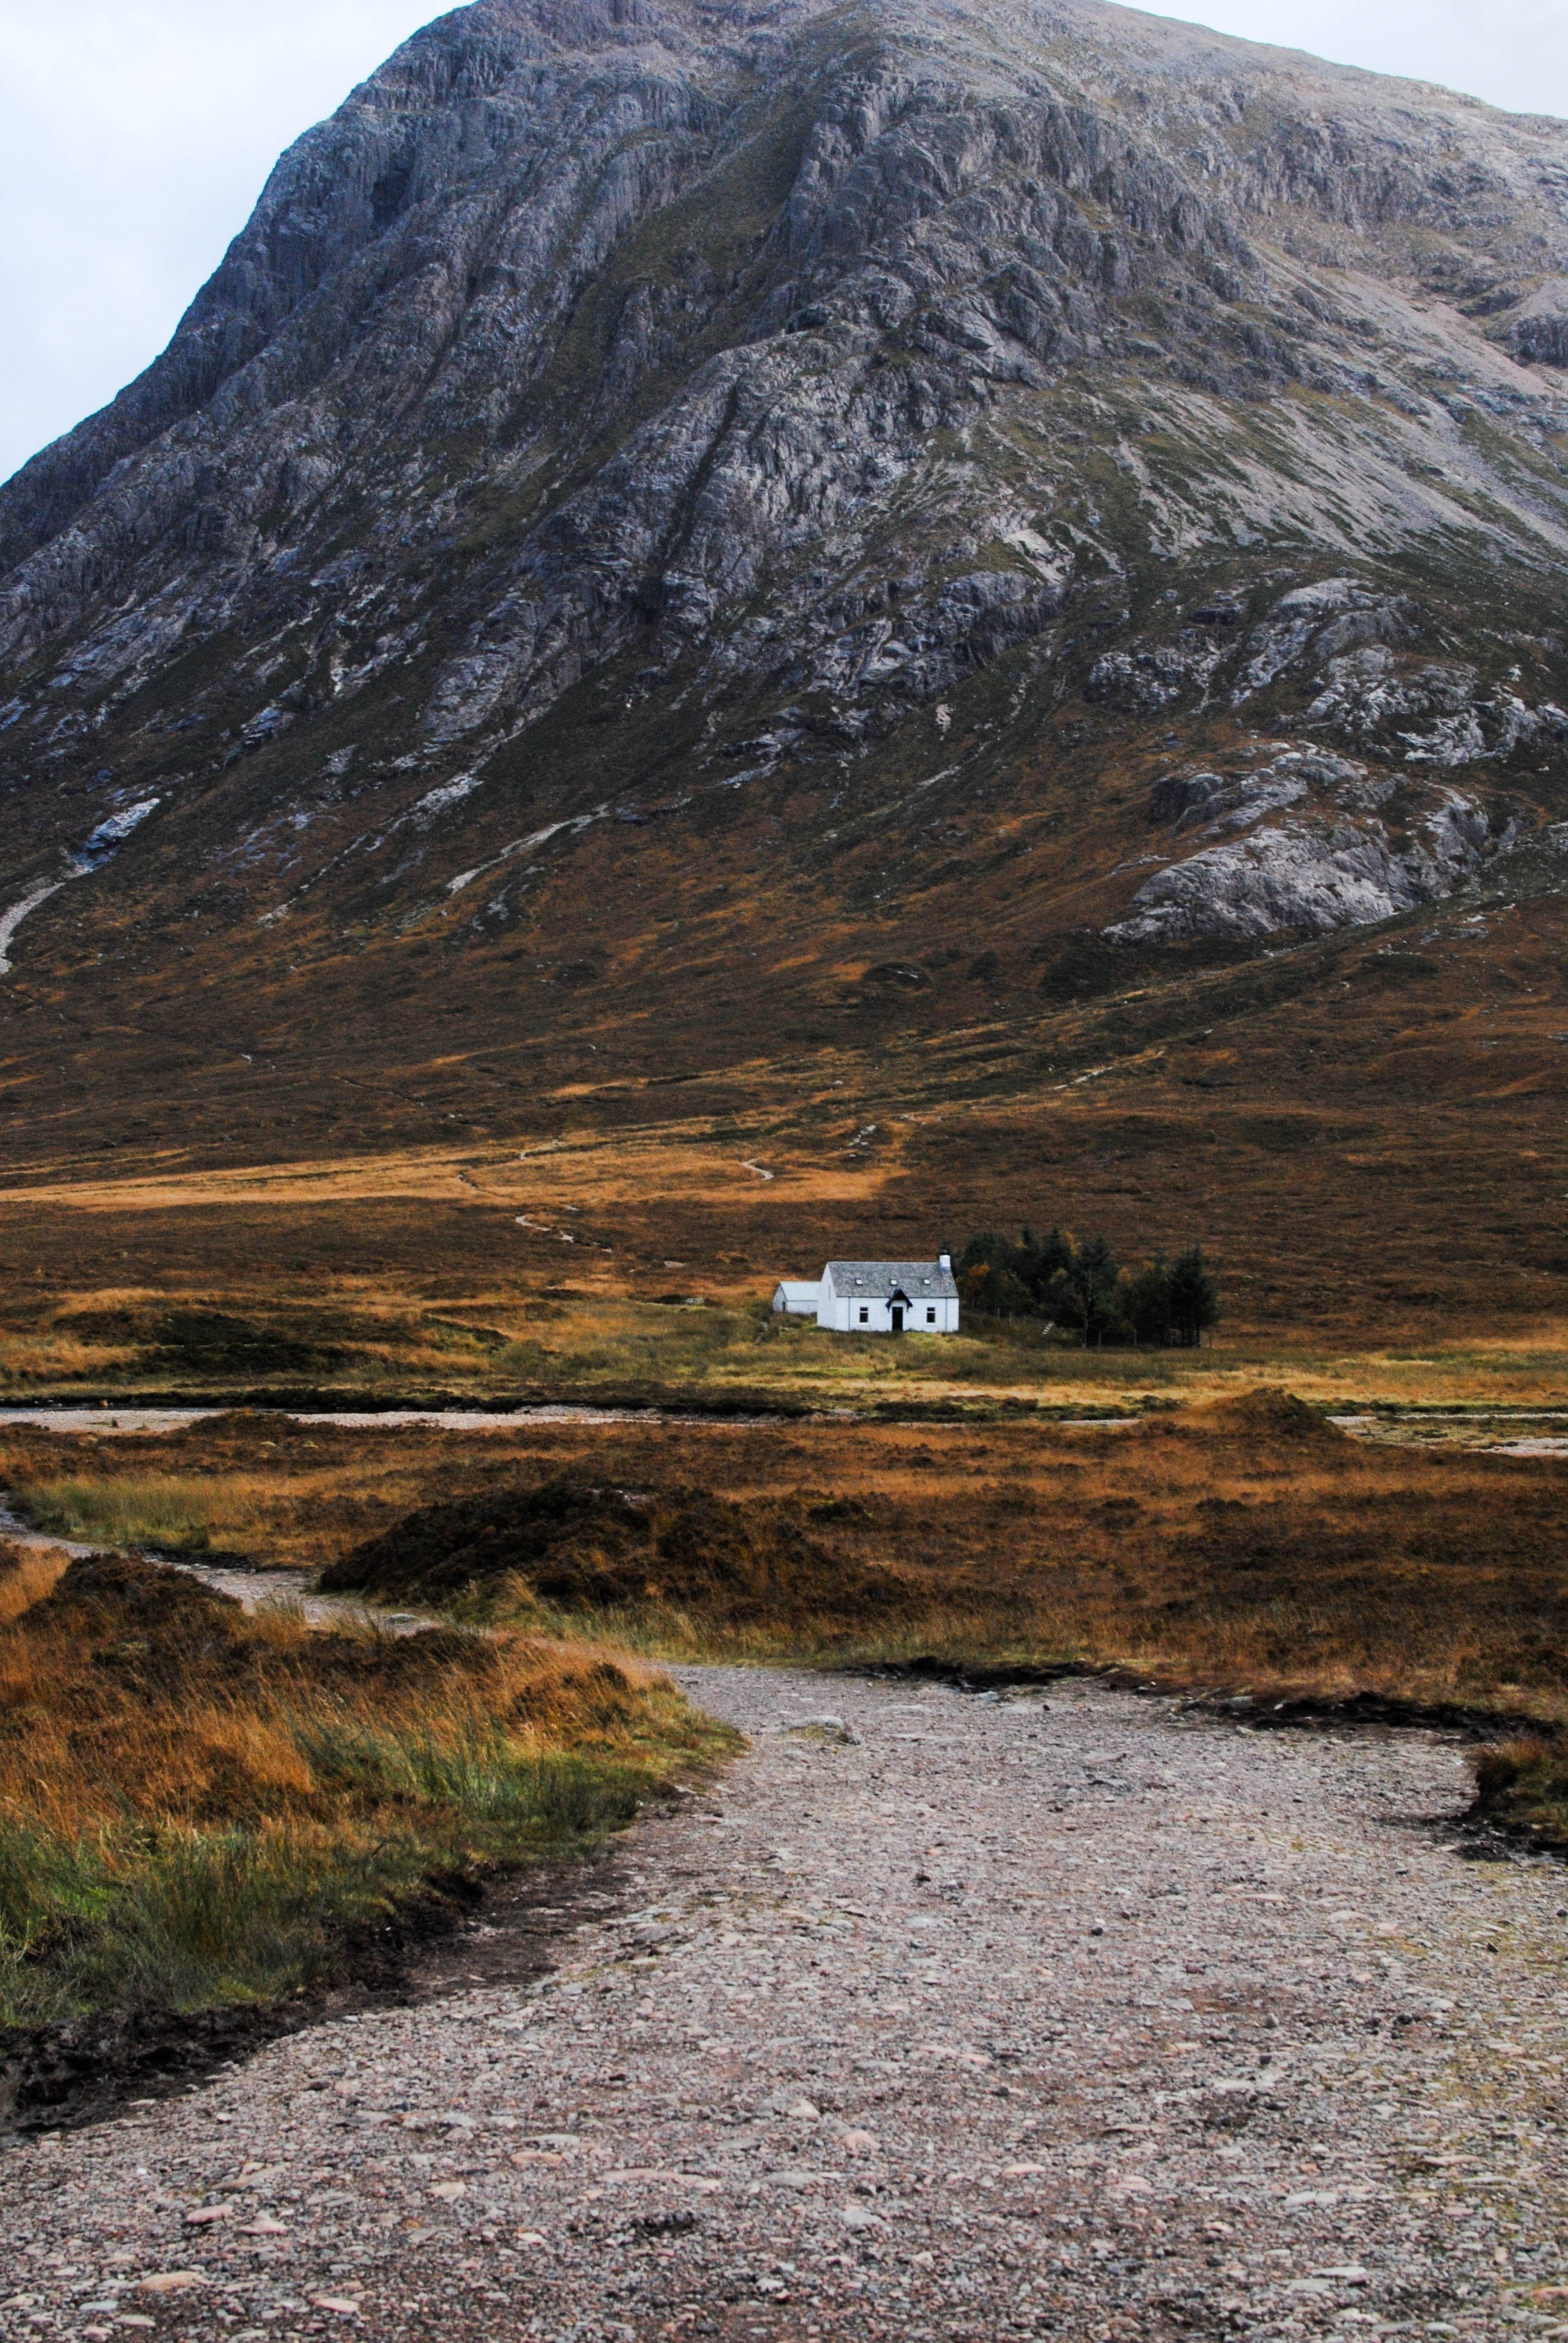 A small white building on a grassy plain at a rugged mountain's foot